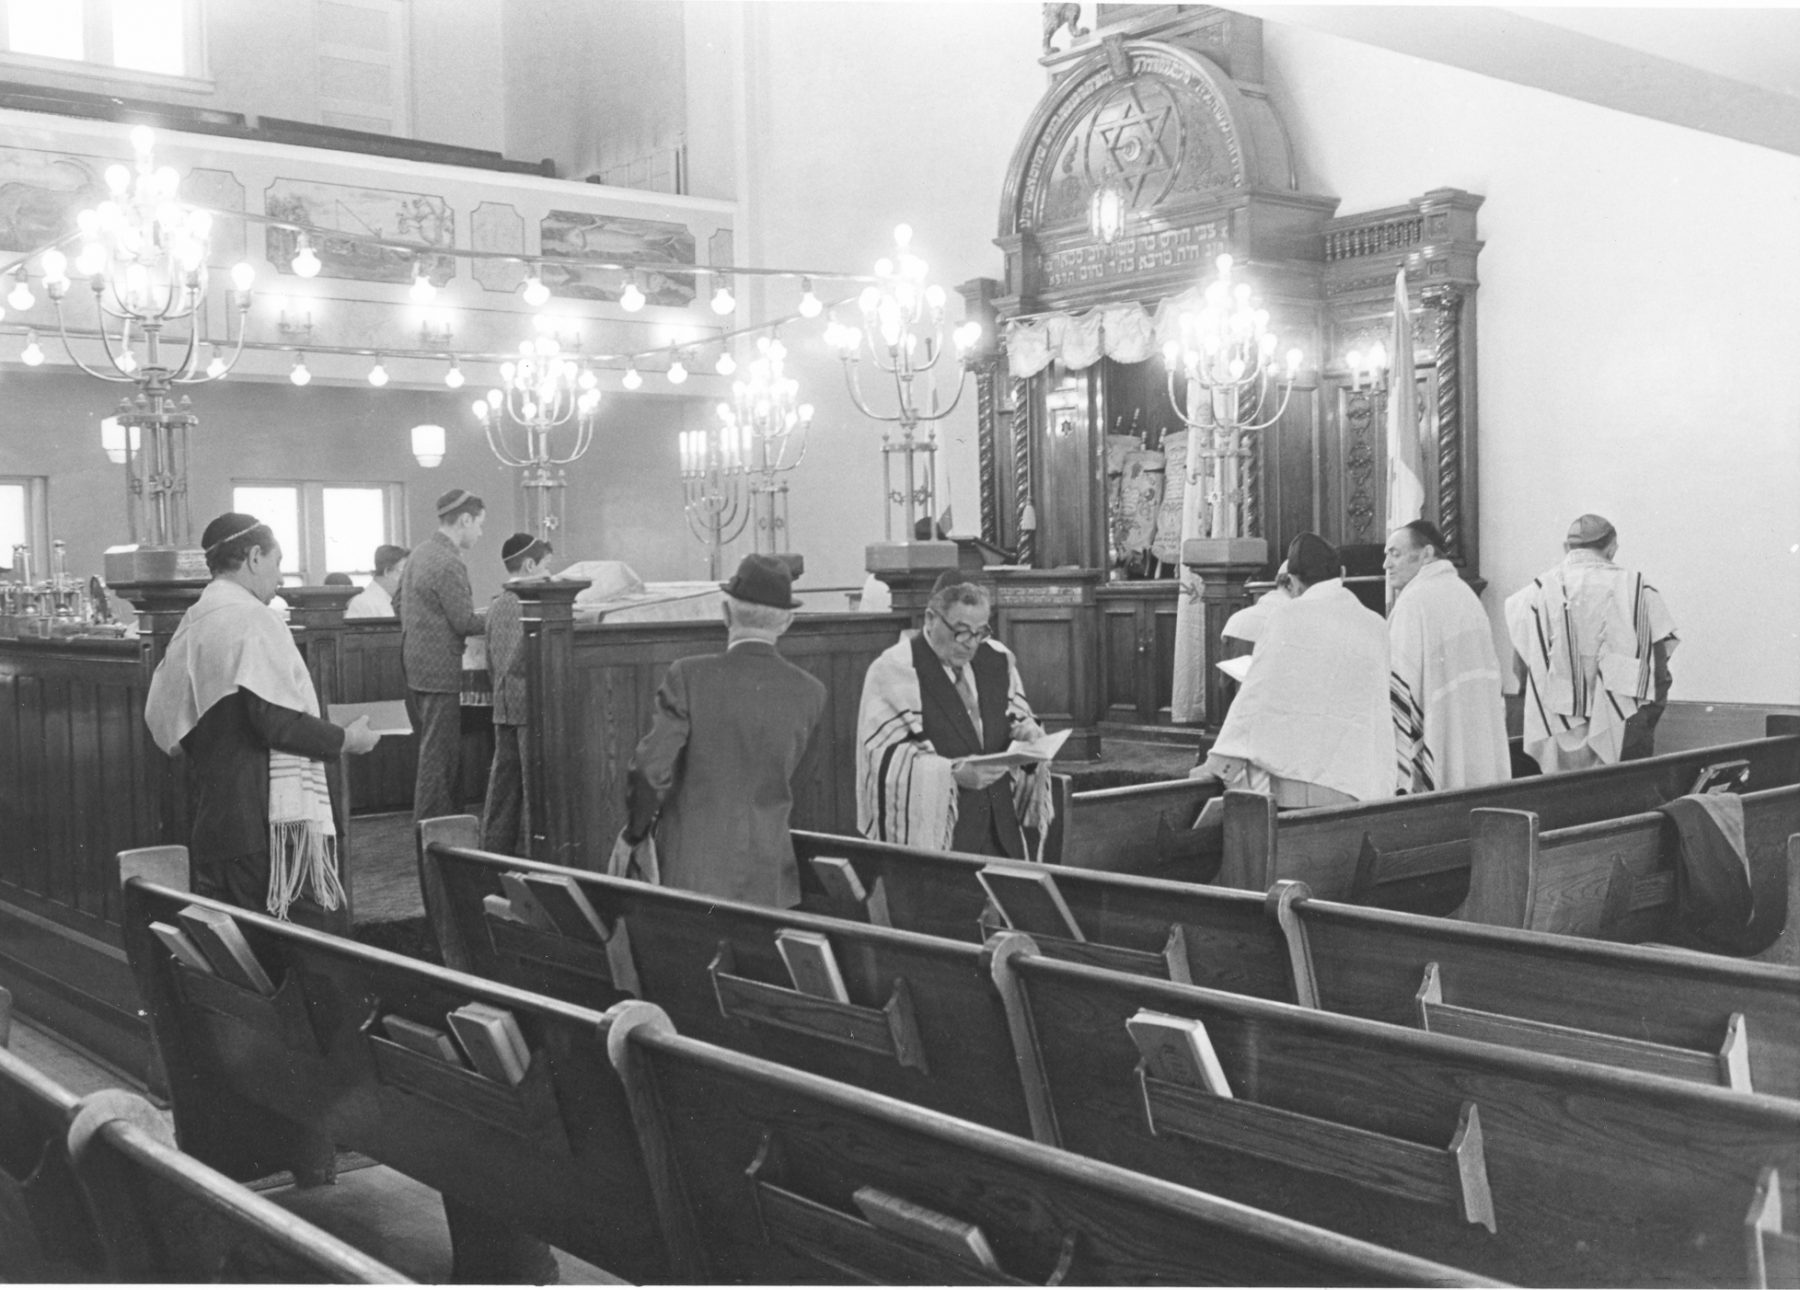 Kiever Shul interior, Apr. 1974. Leading the service from the bimah, the raised platform at the centre of the sanctuary, are Michael David and Earl David.   OJA, item 293.